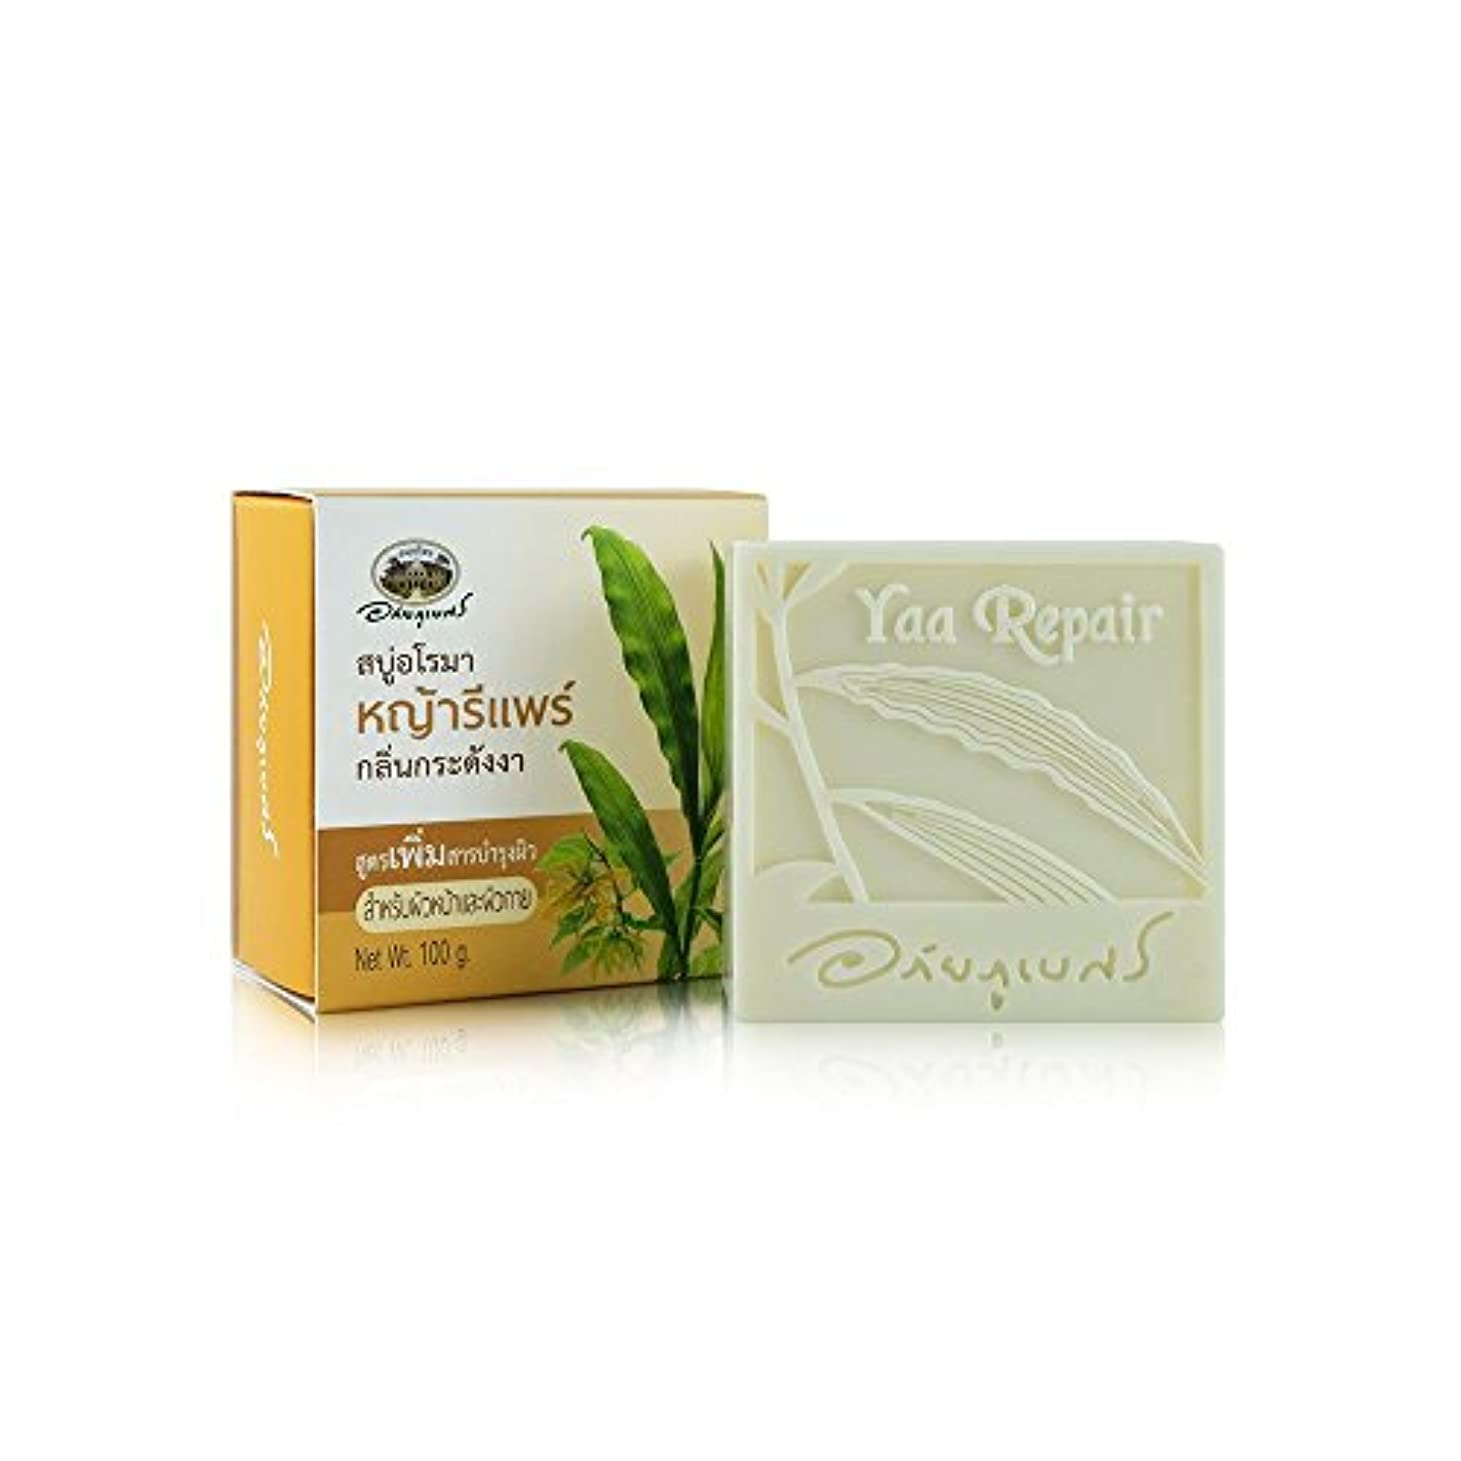 ダーリン毎週容器Abhaibhubejhr Thai Aromatherapy With Ylang Ylang Skin Care Formula Herbal Body Face Cleaning Soap 100g.